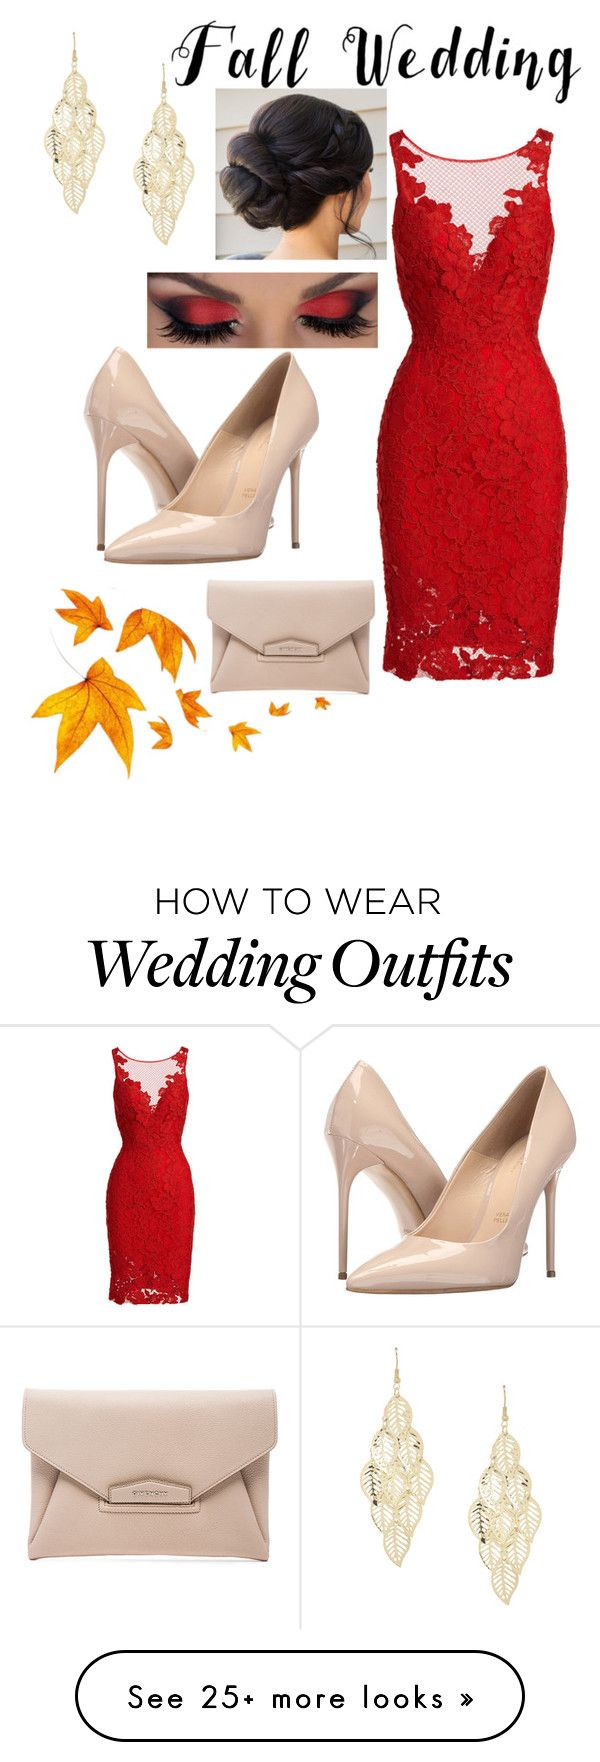 """""""Fall Wedding: Guest"""" by whynterthyme on Polyvore featuring ML Monique Lhuillier, Massimo Matteo, Givenchy and fallwedding"""